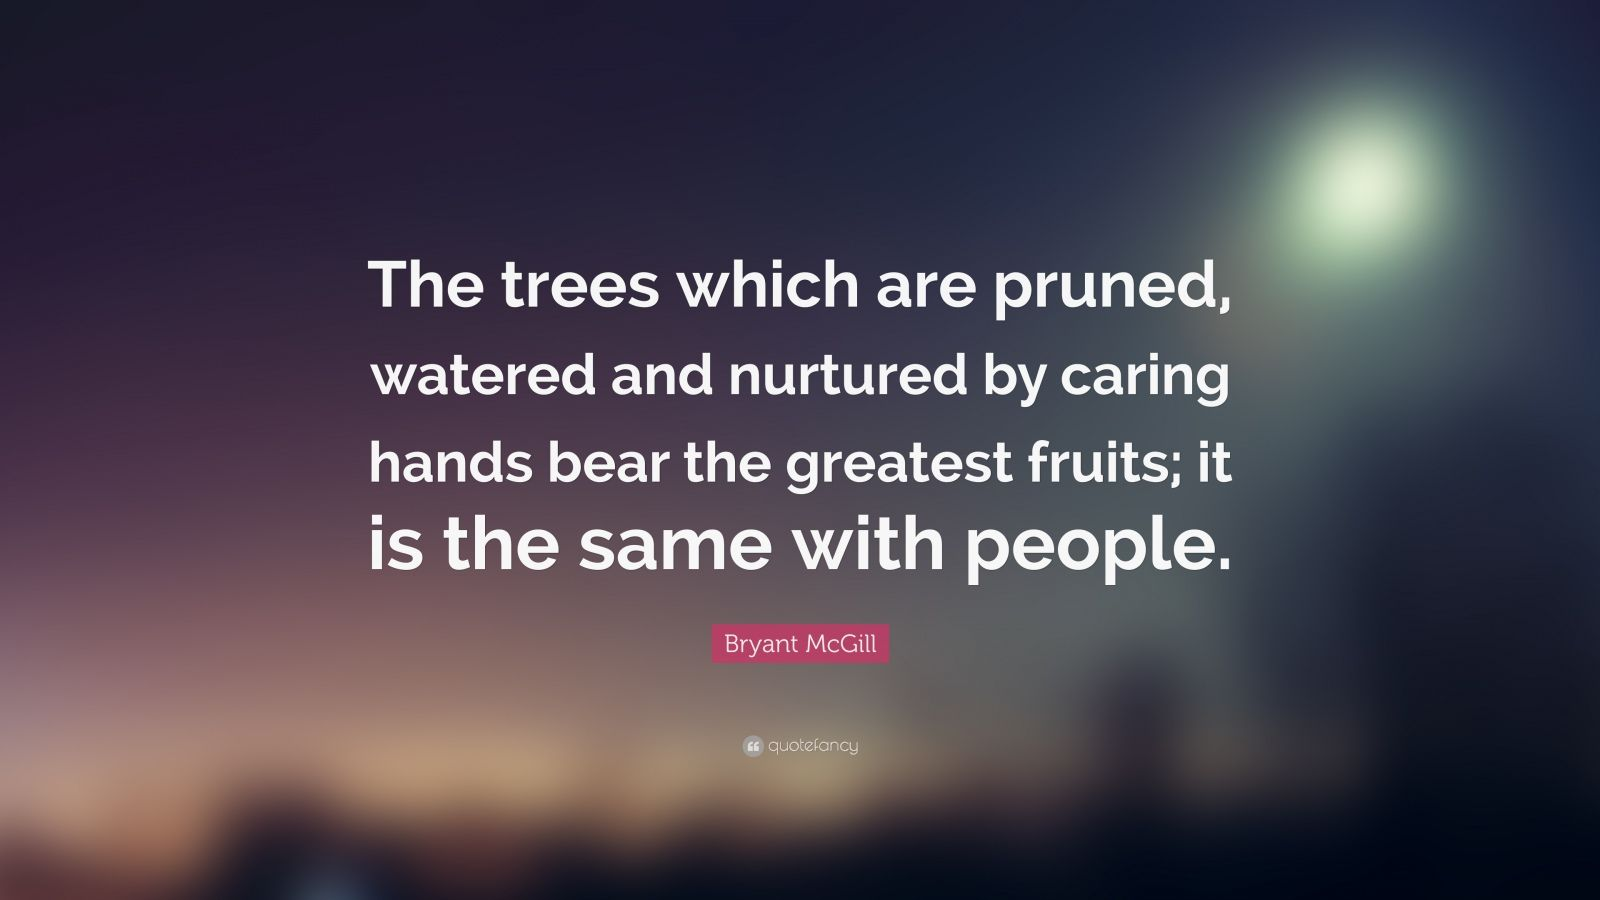 """Bryant McGill Quote: """"The trees which are pruned, watered and nurtured by caring hands bear the greatest fruits; it is the same with people."""""""